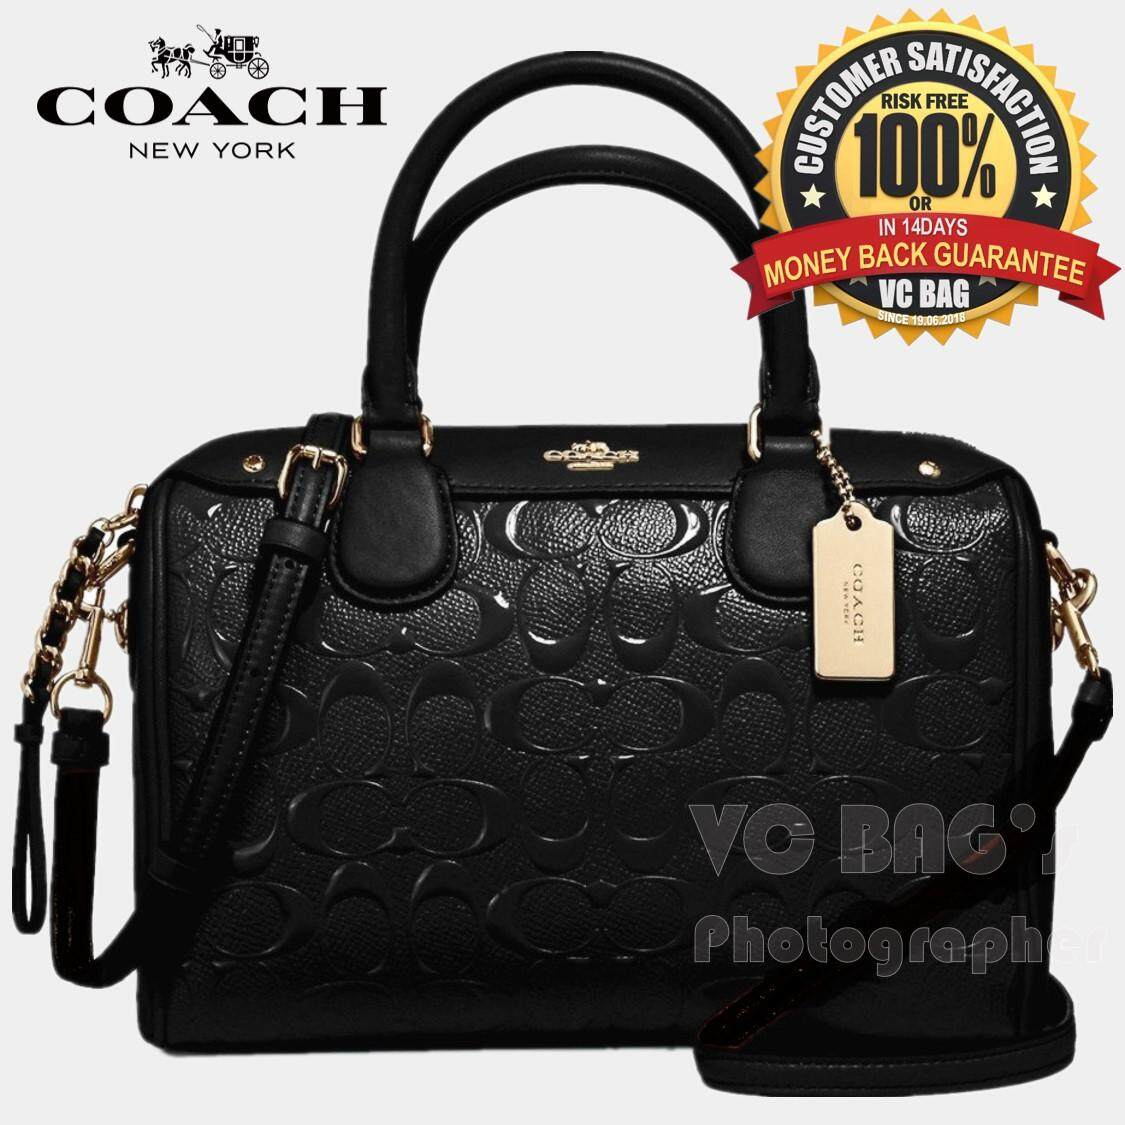 bd8a3e59abc COACH F11920 Mini Bennet Satchel in Signature Debossed Patent Leather Bag   Light Gold Black